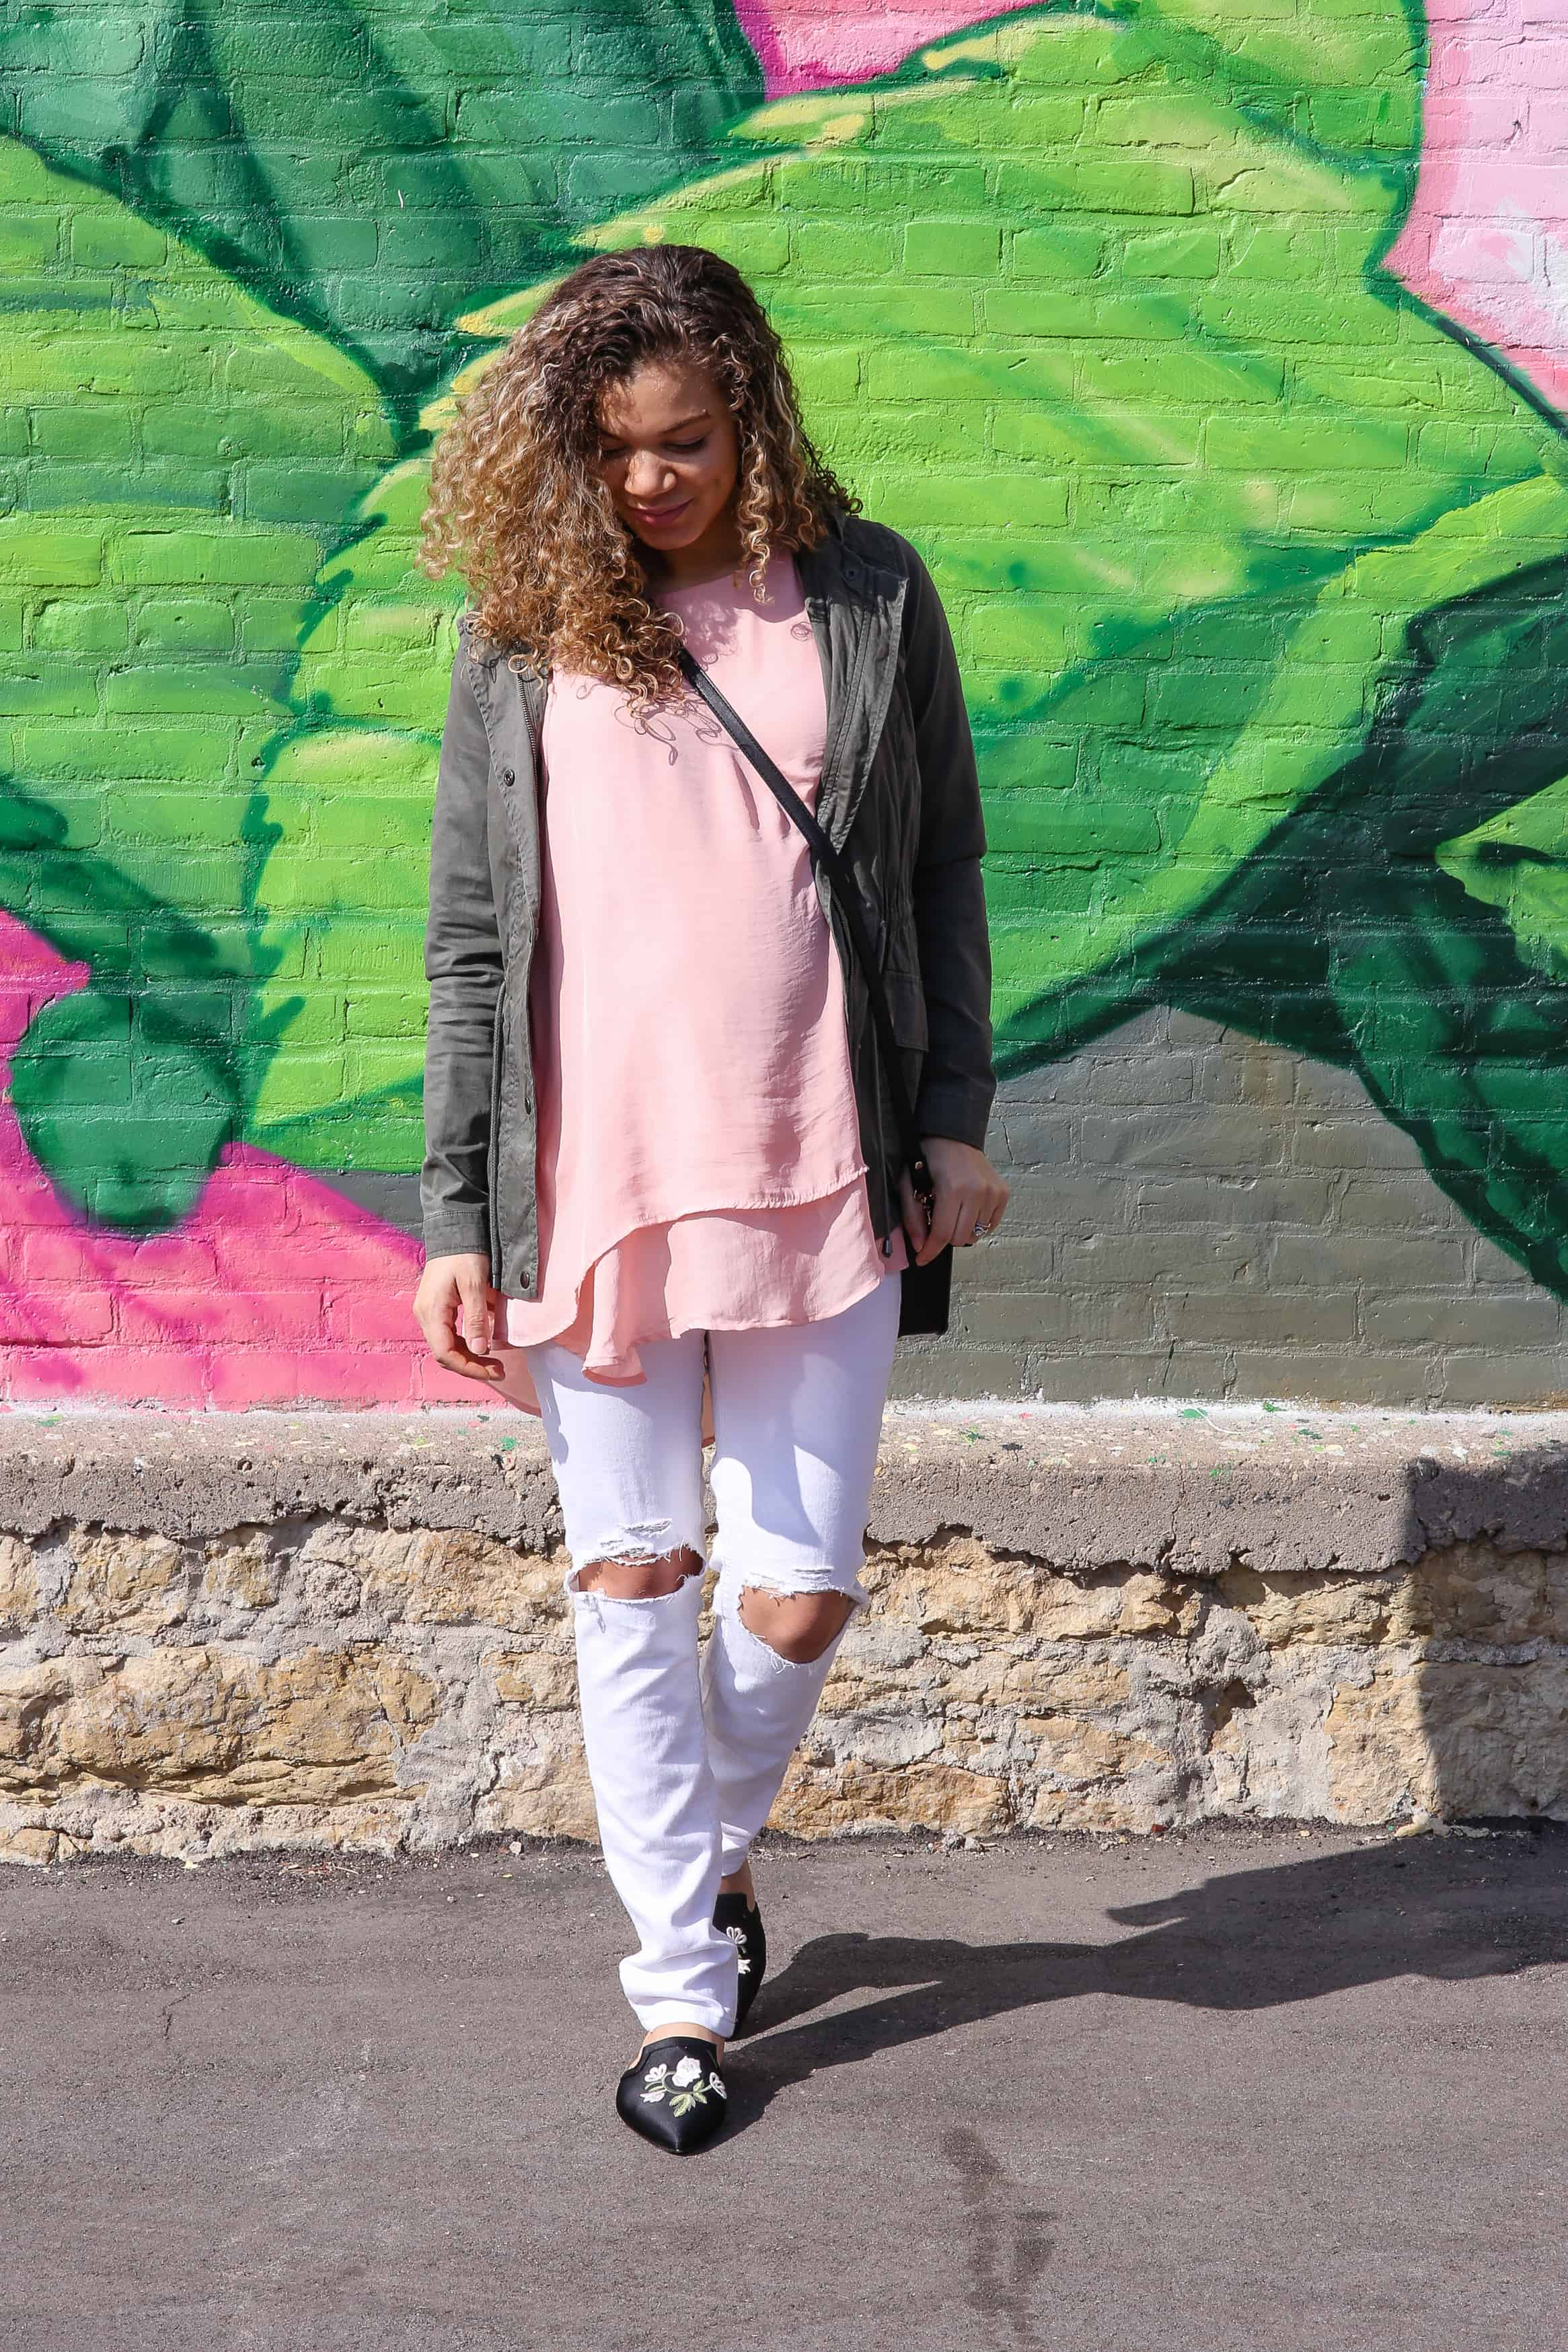 Blush Pink and Olive Green Color Combo Outfit for Spring - My Chic Obsession 2a8436ebf